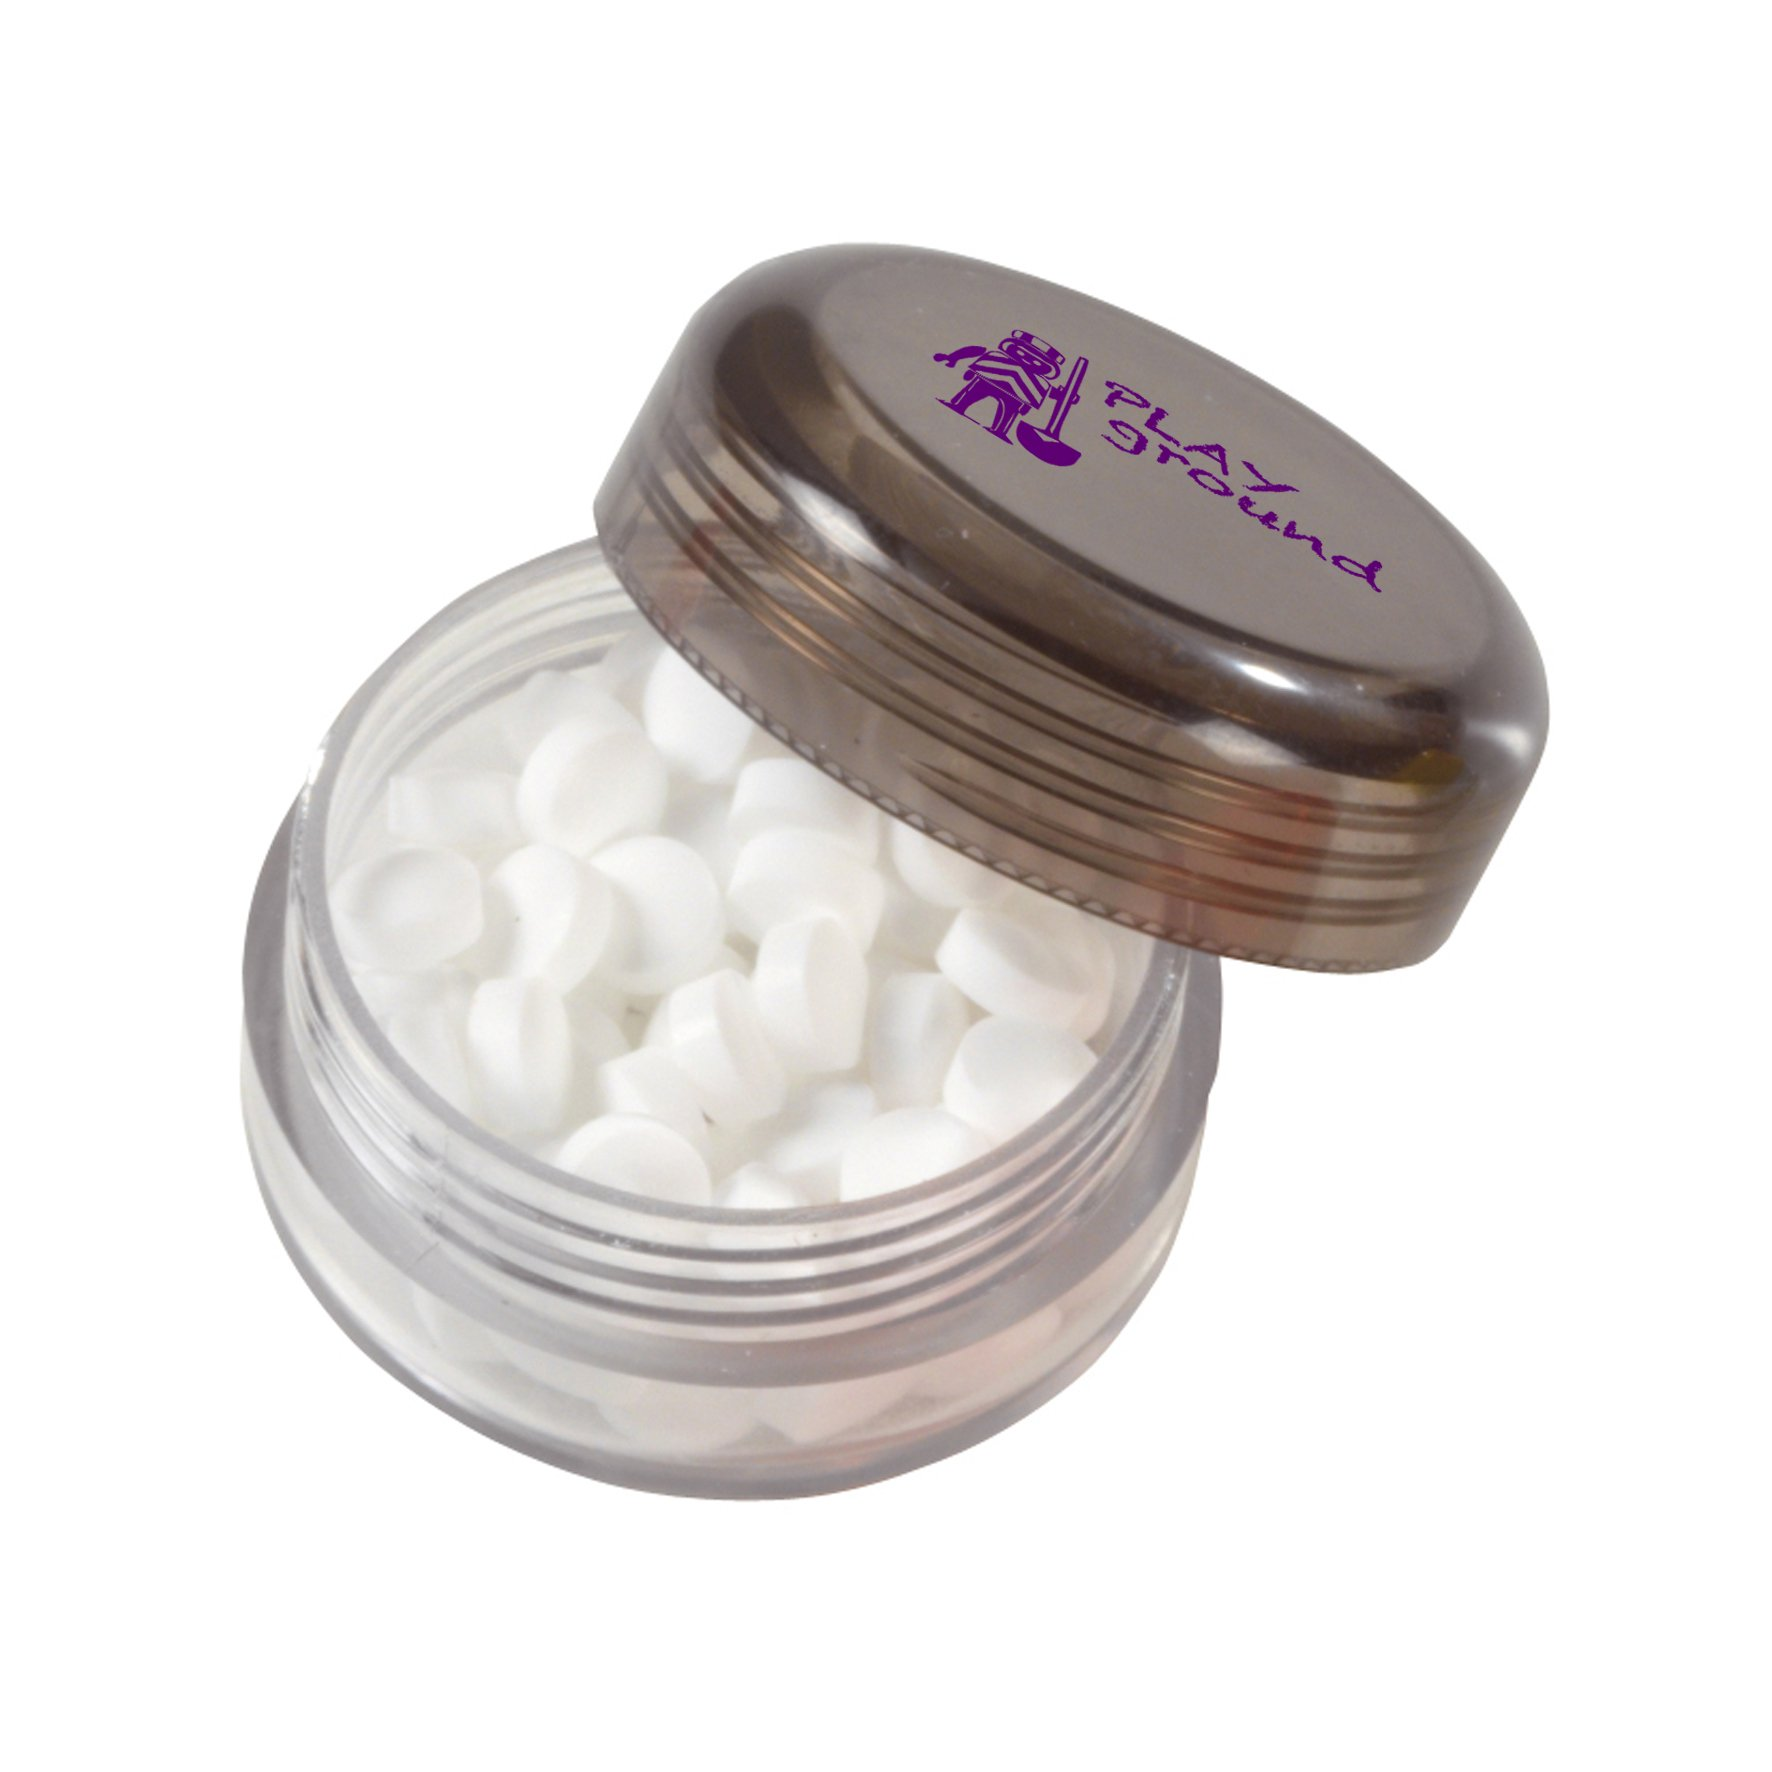 Mints in plastic container